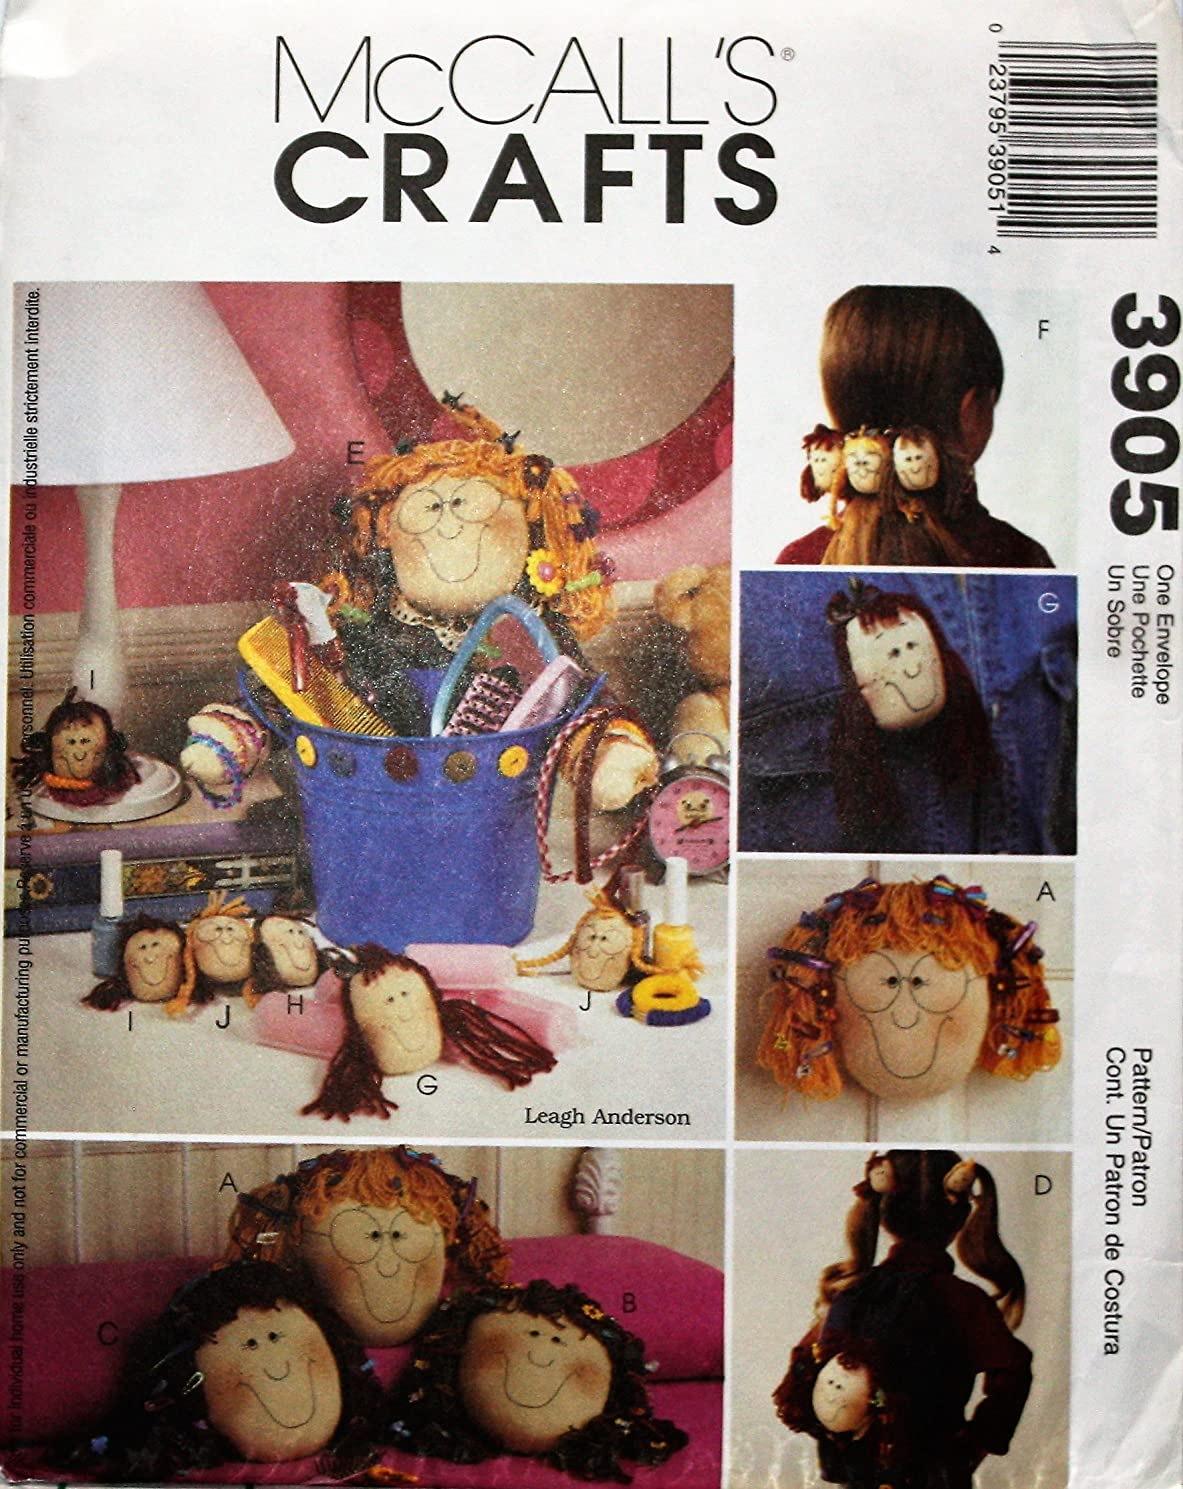 McCall's Crafts 3905 Sewing Pattern Accessories for Girls Tote Bag, Pillow, Barrette, Pin, Ponytail Holder, Accessory Holder